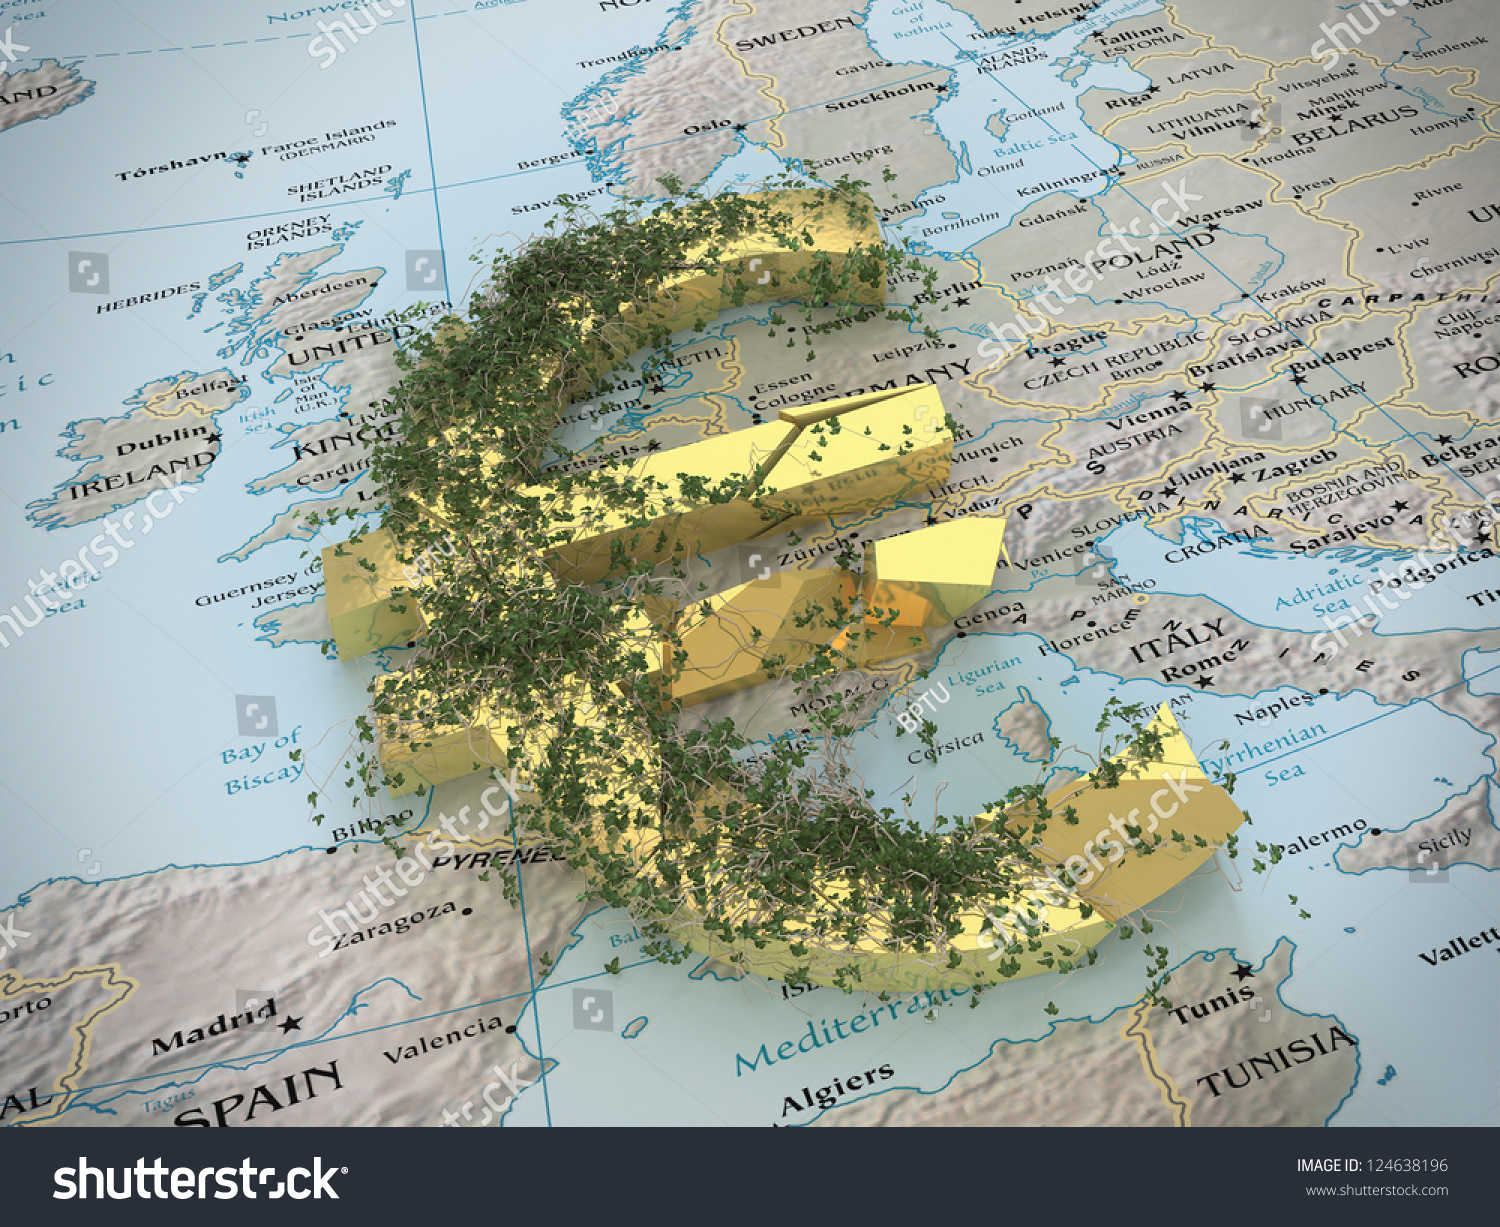 Broken euro currency symbol on political stock illustration a broken euro currency symbol on the political map of europe biocorpaavc Images